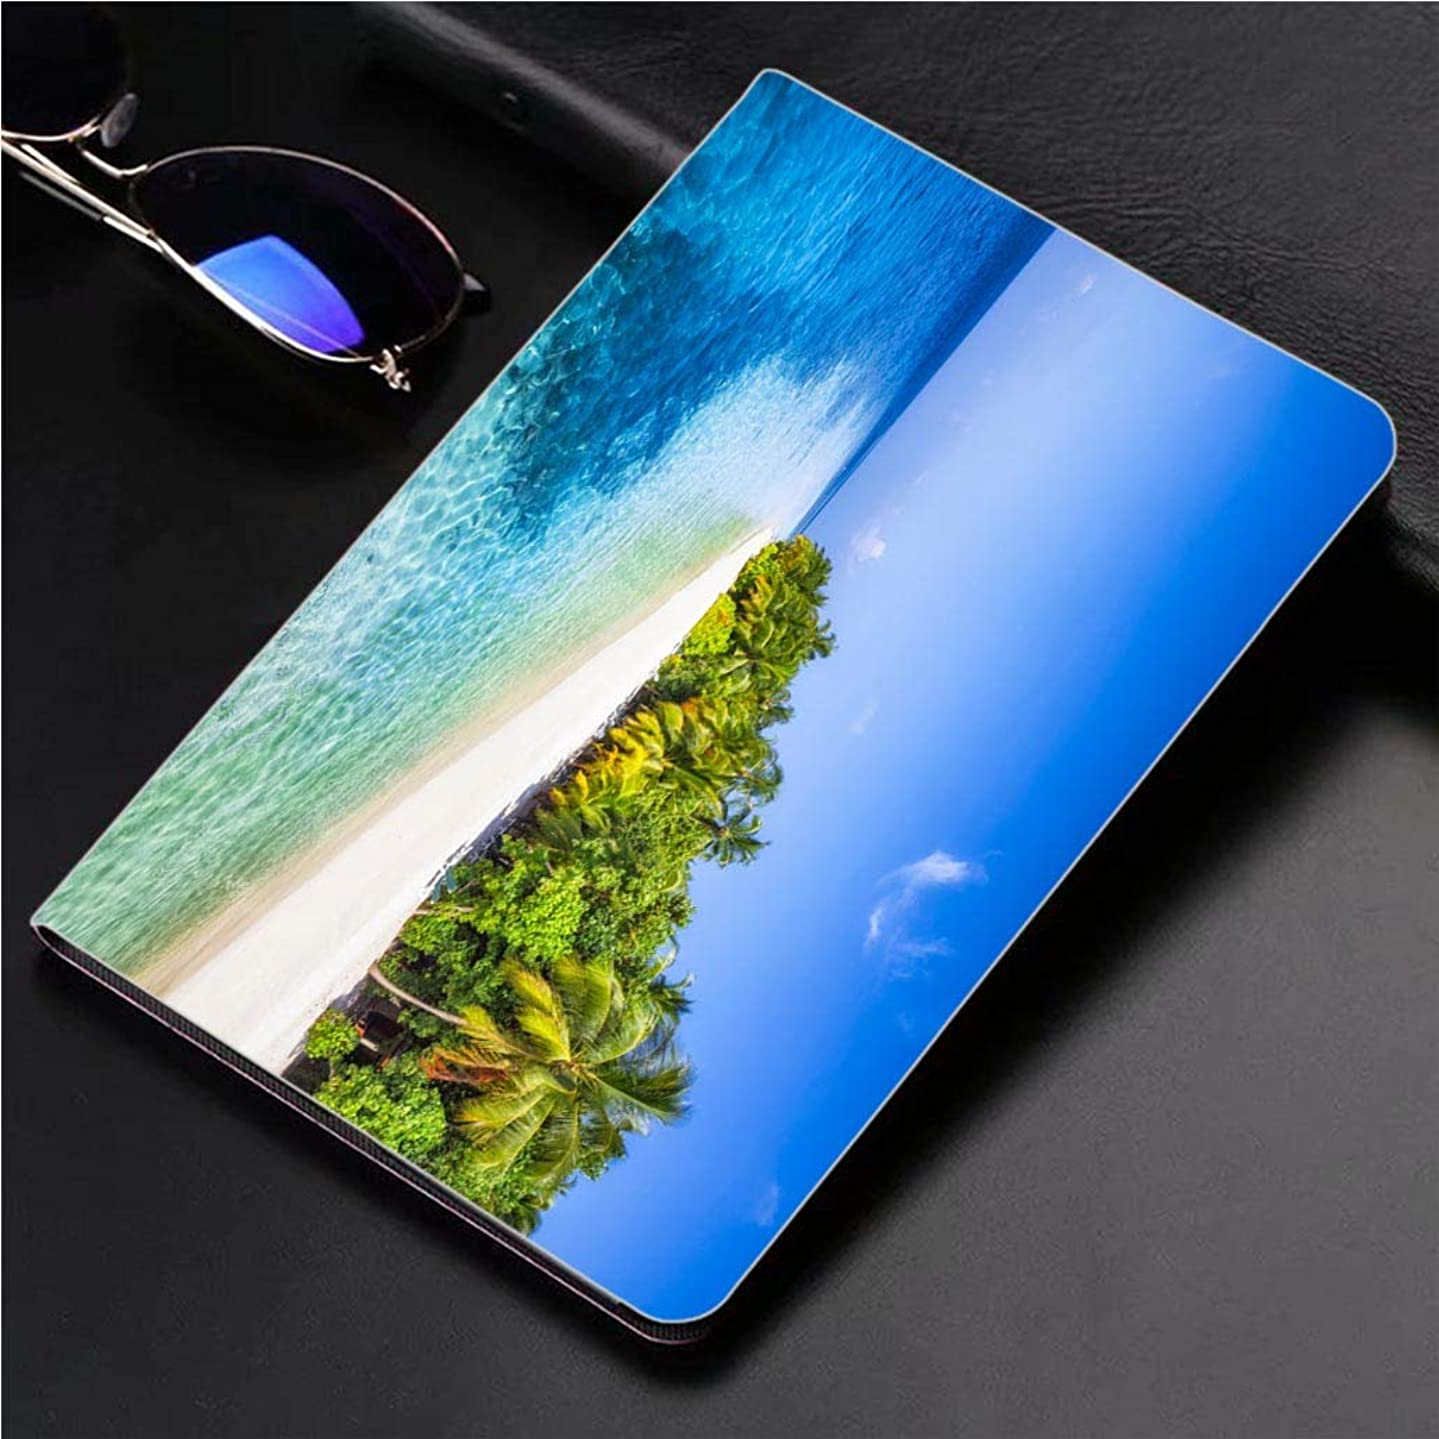 Compatible with 3D Printed iPad Pro 10.5 Case Palm Beach 360 Degree Swivel Mount Cover for Automatic Sleep Wake up ipad case